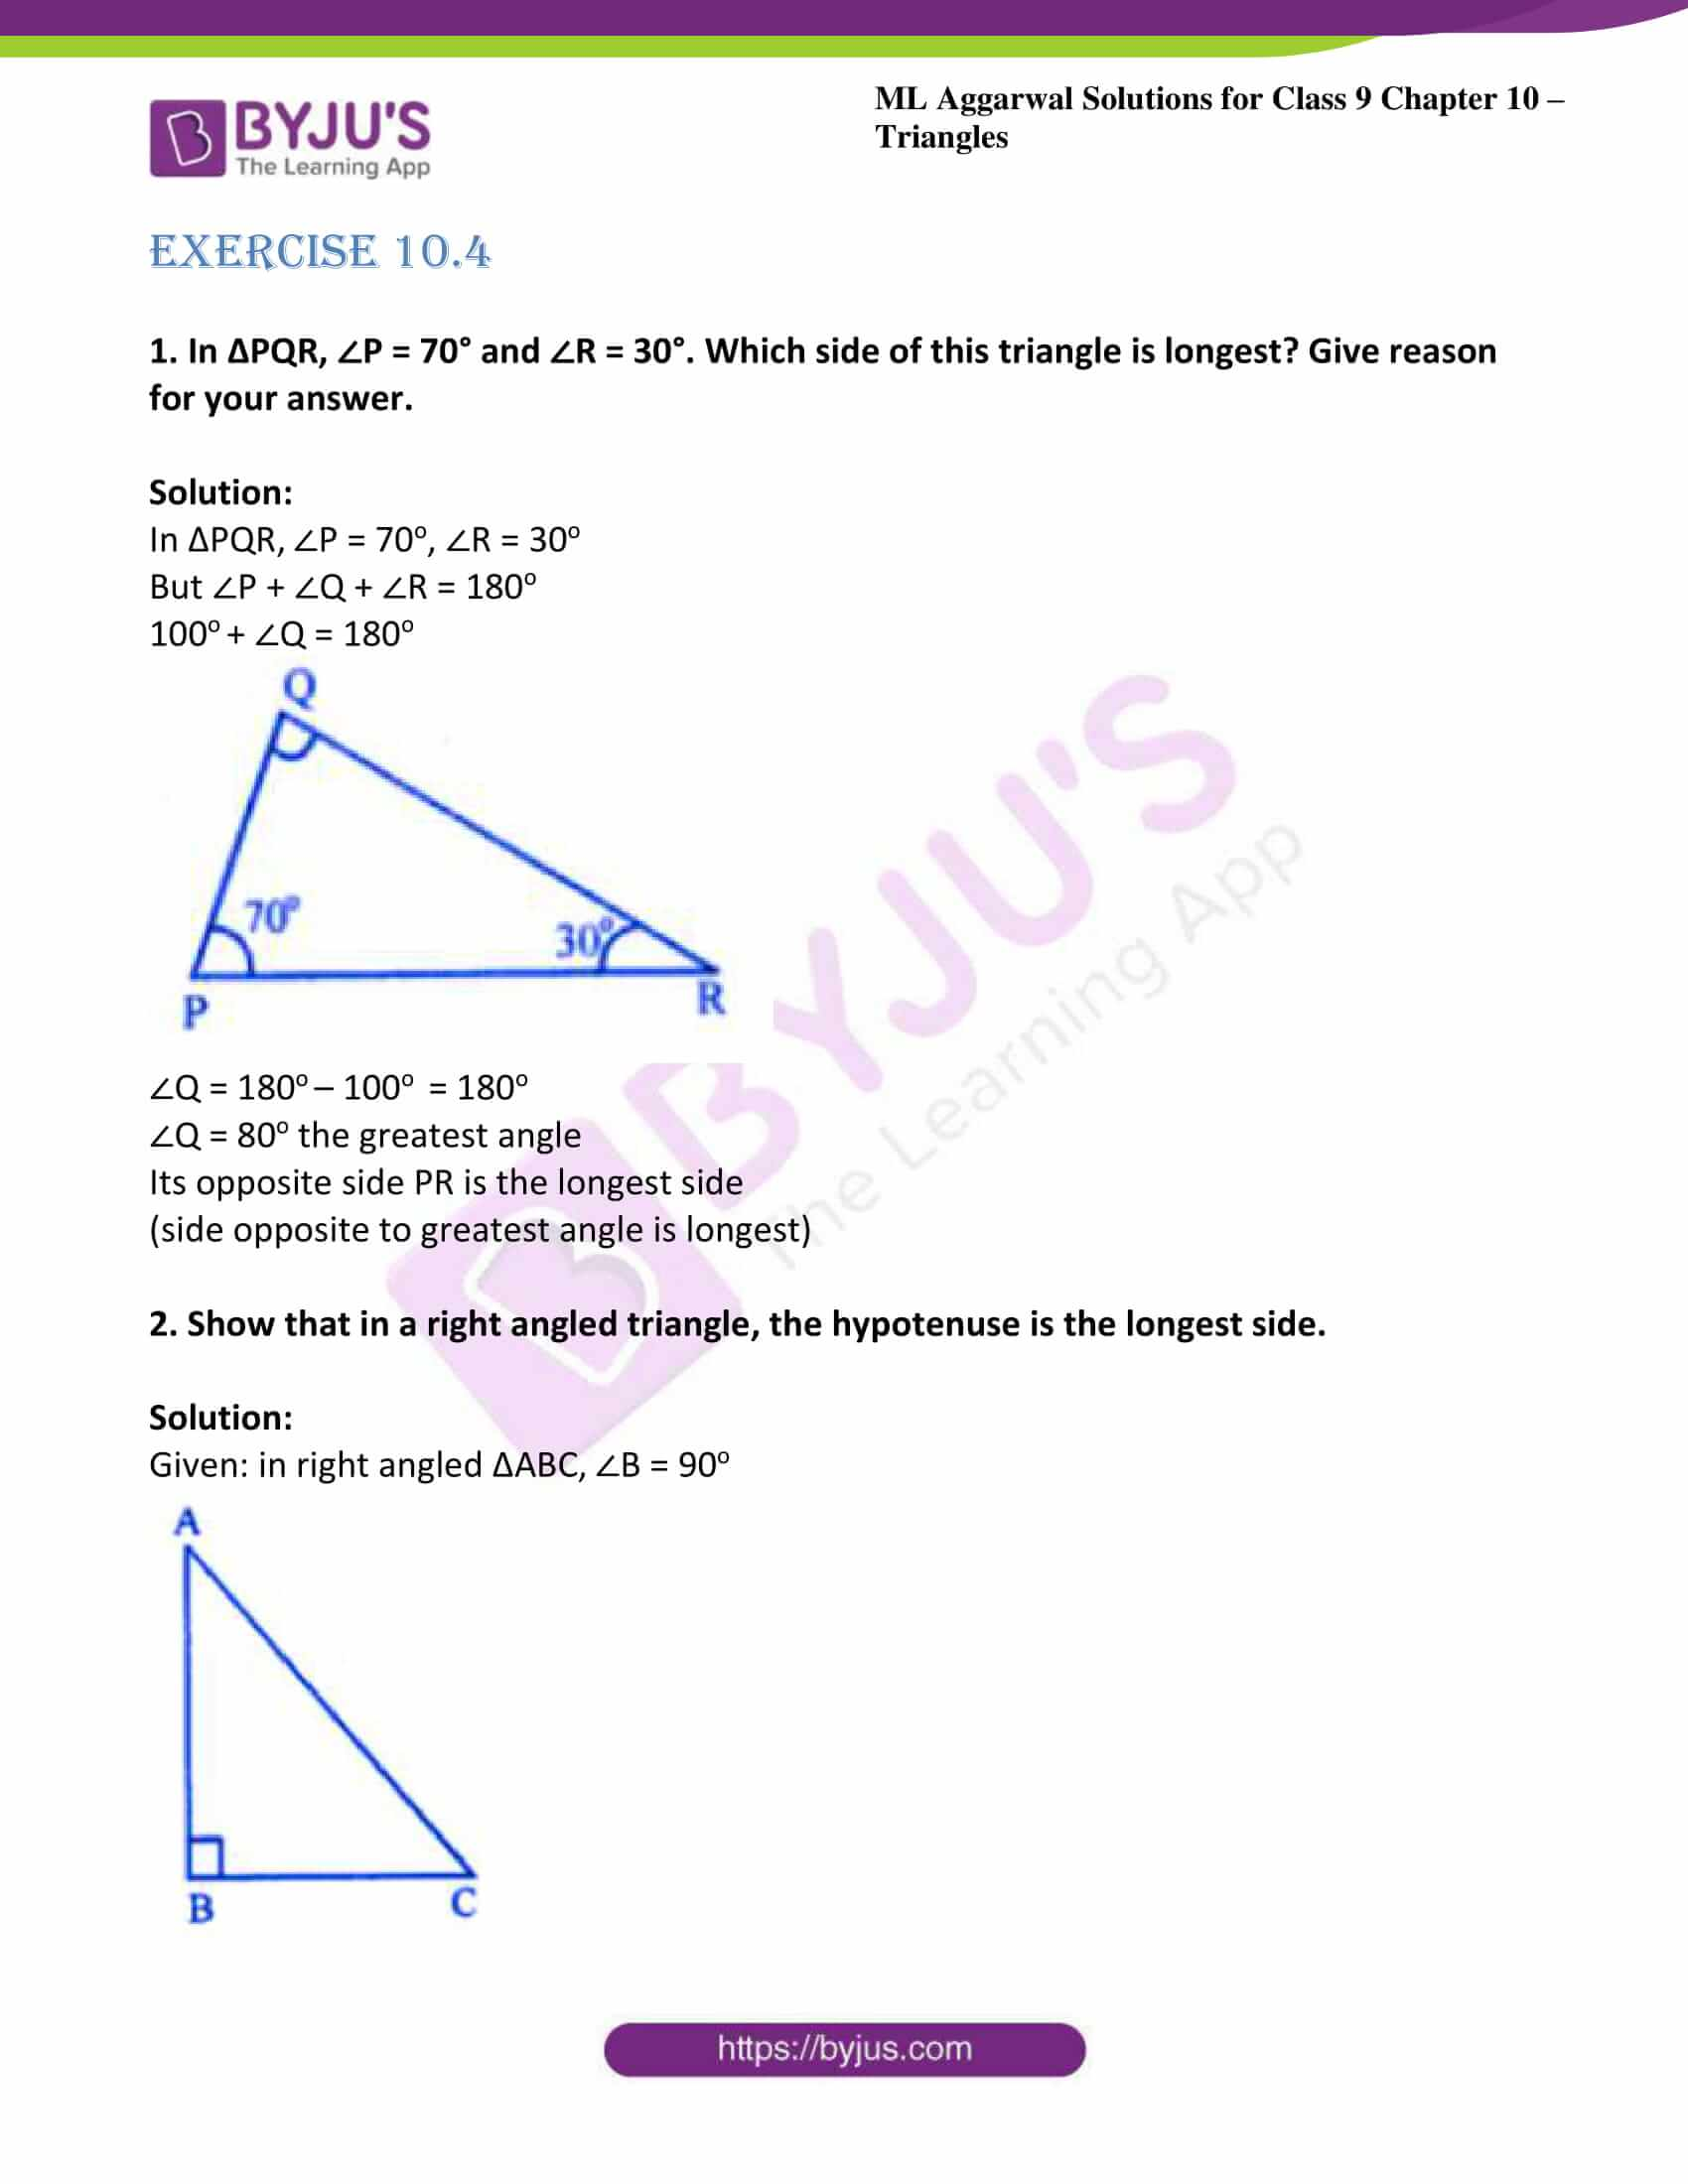 ml aggarwal solutions for class 9 maths chapter 10 25